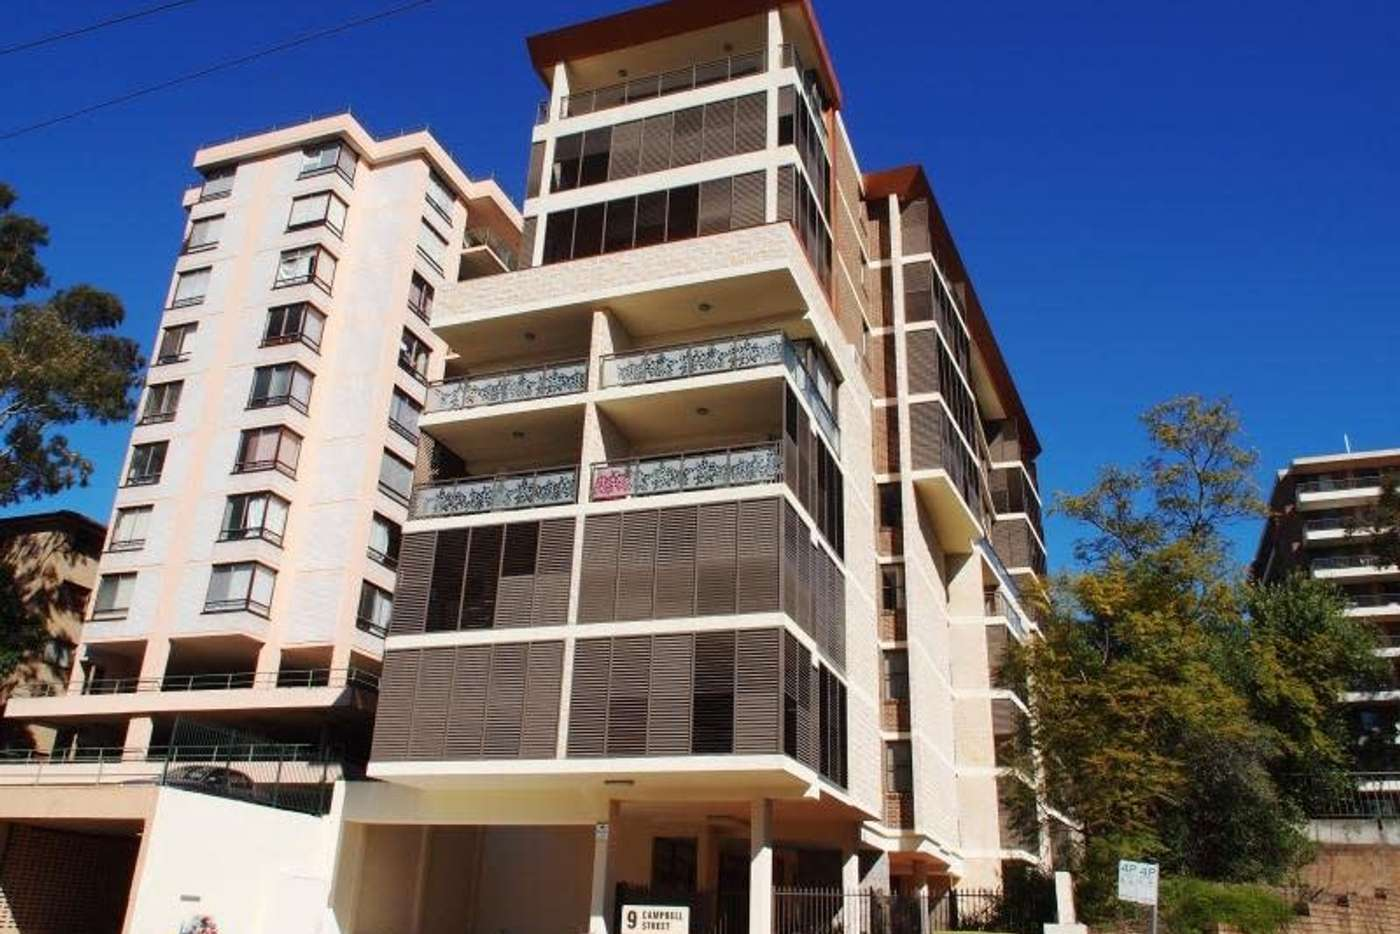 Main view of Homely apartment listing, 22/9 Campbell Street, Parramatta NSW 2150